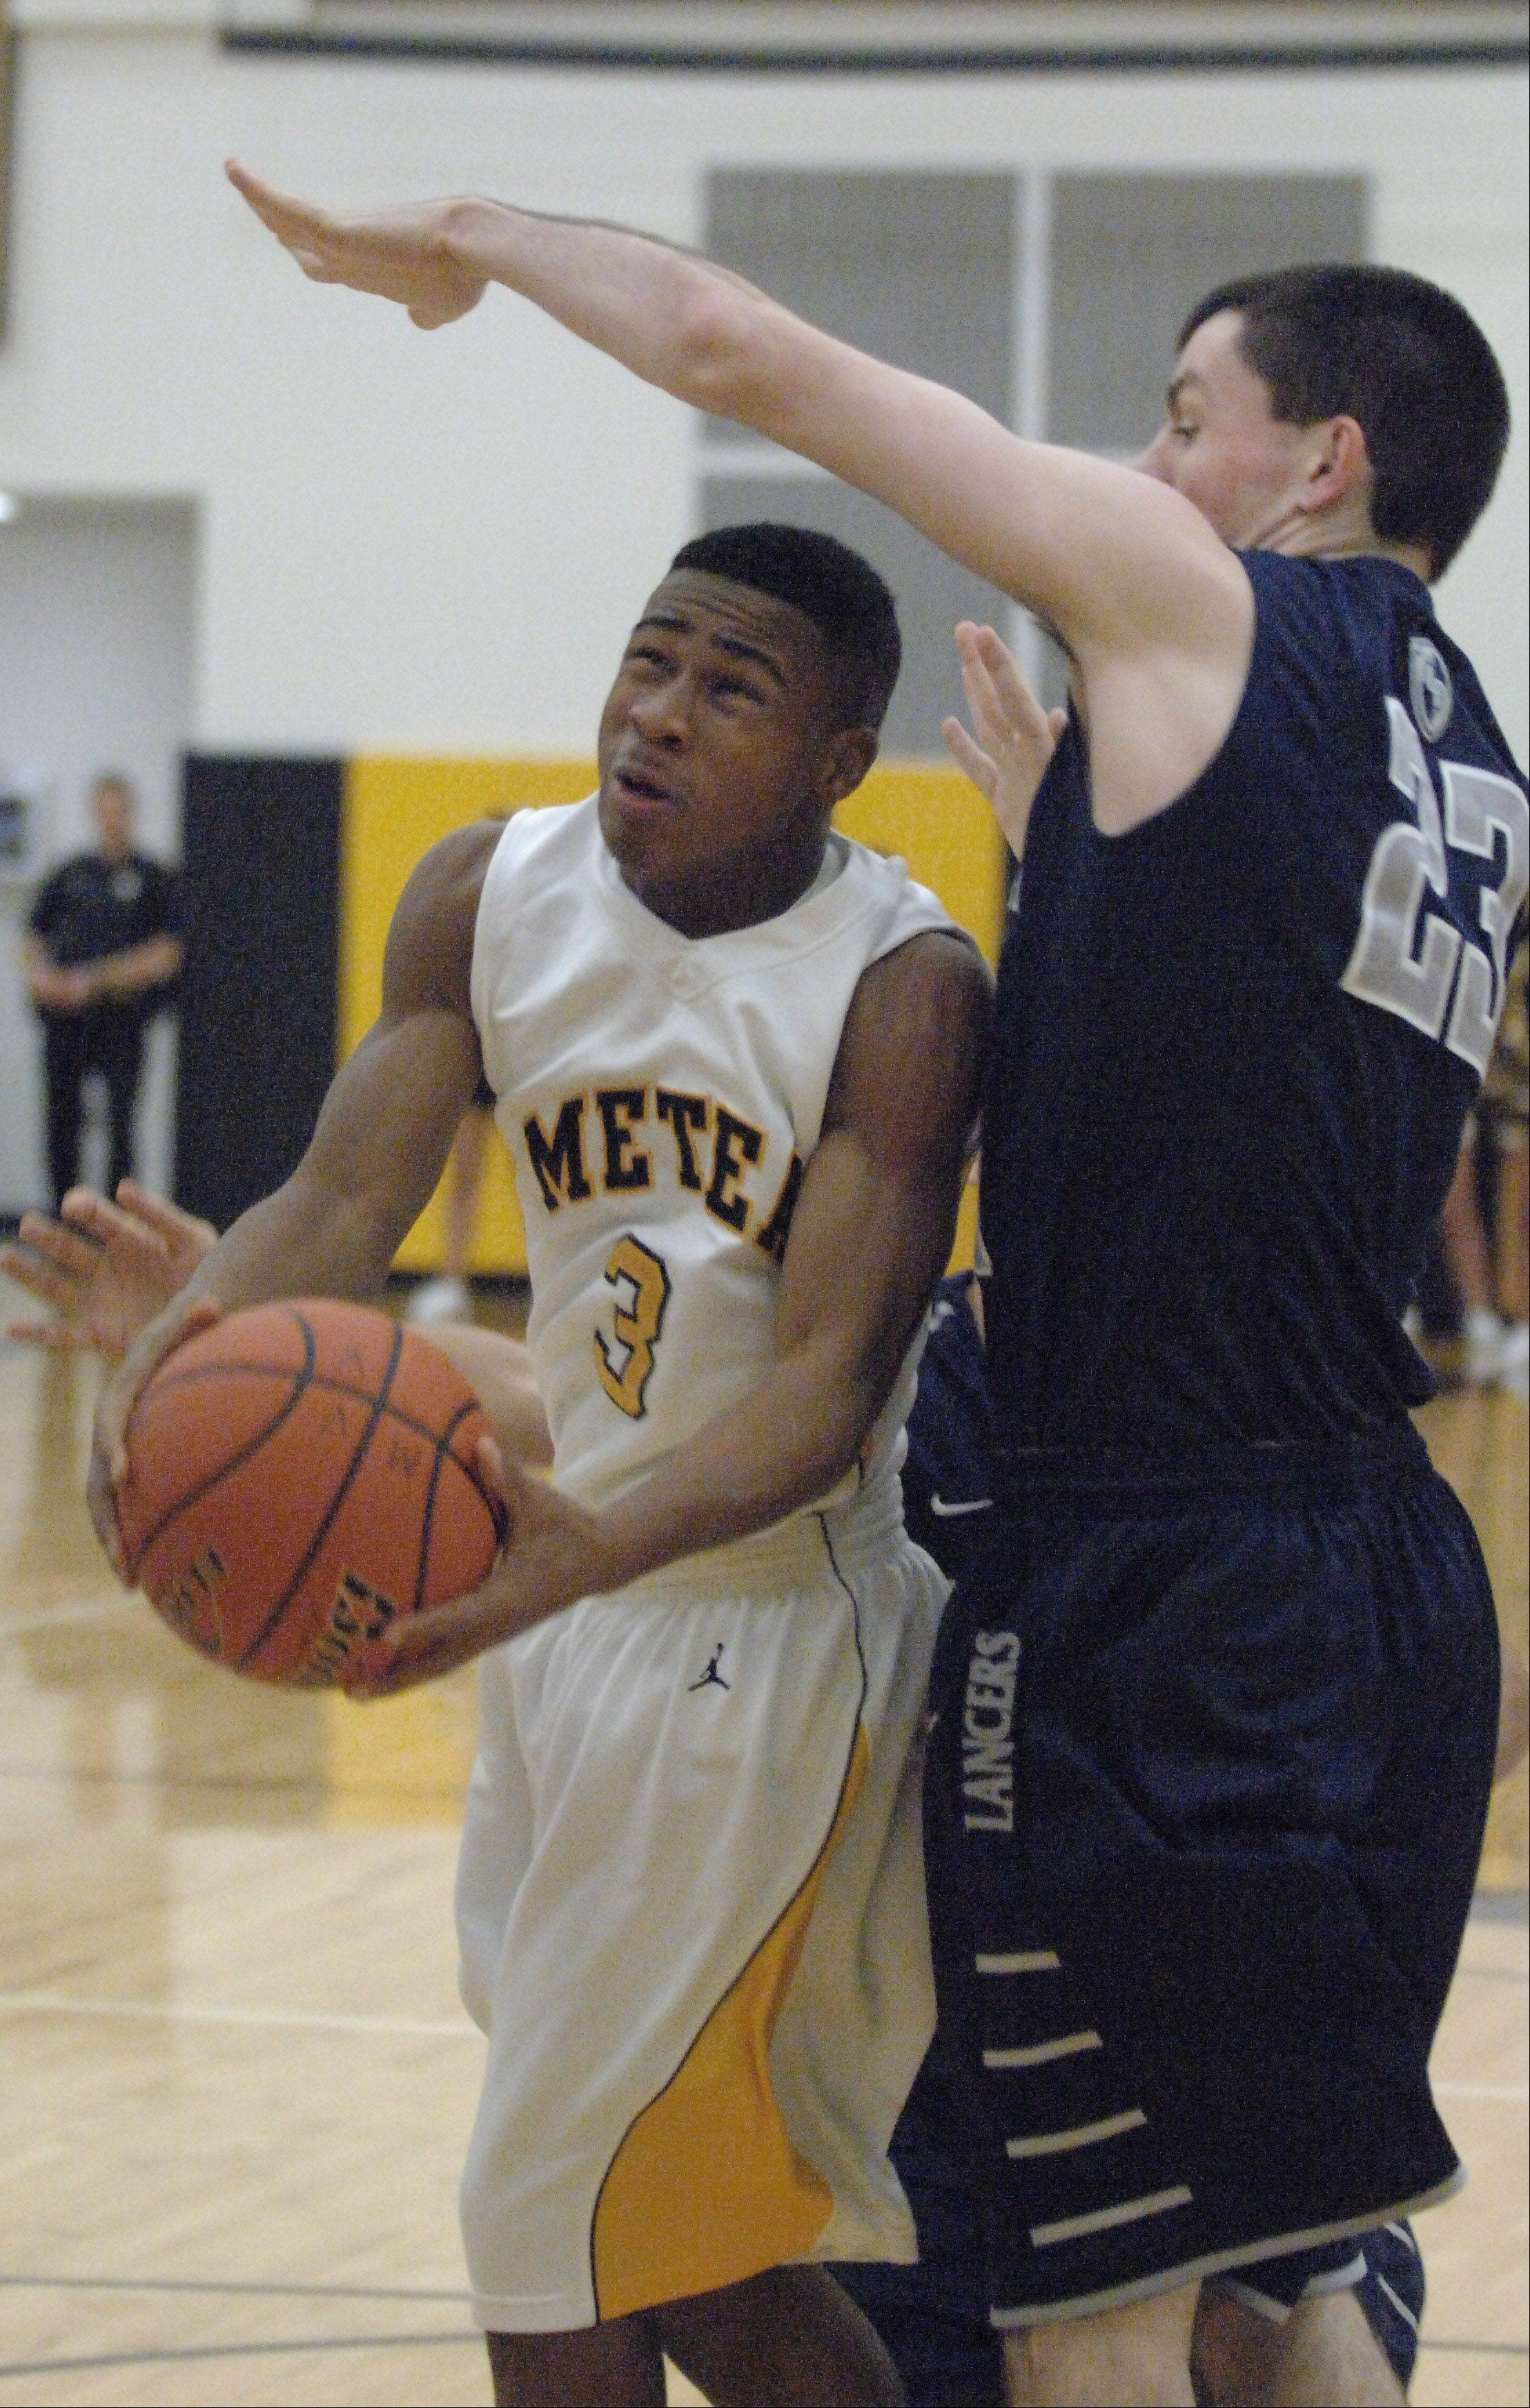 Bryson Oliver,left, of Metea Valley takes a shot as Sean Moore of Lake Park blocks.